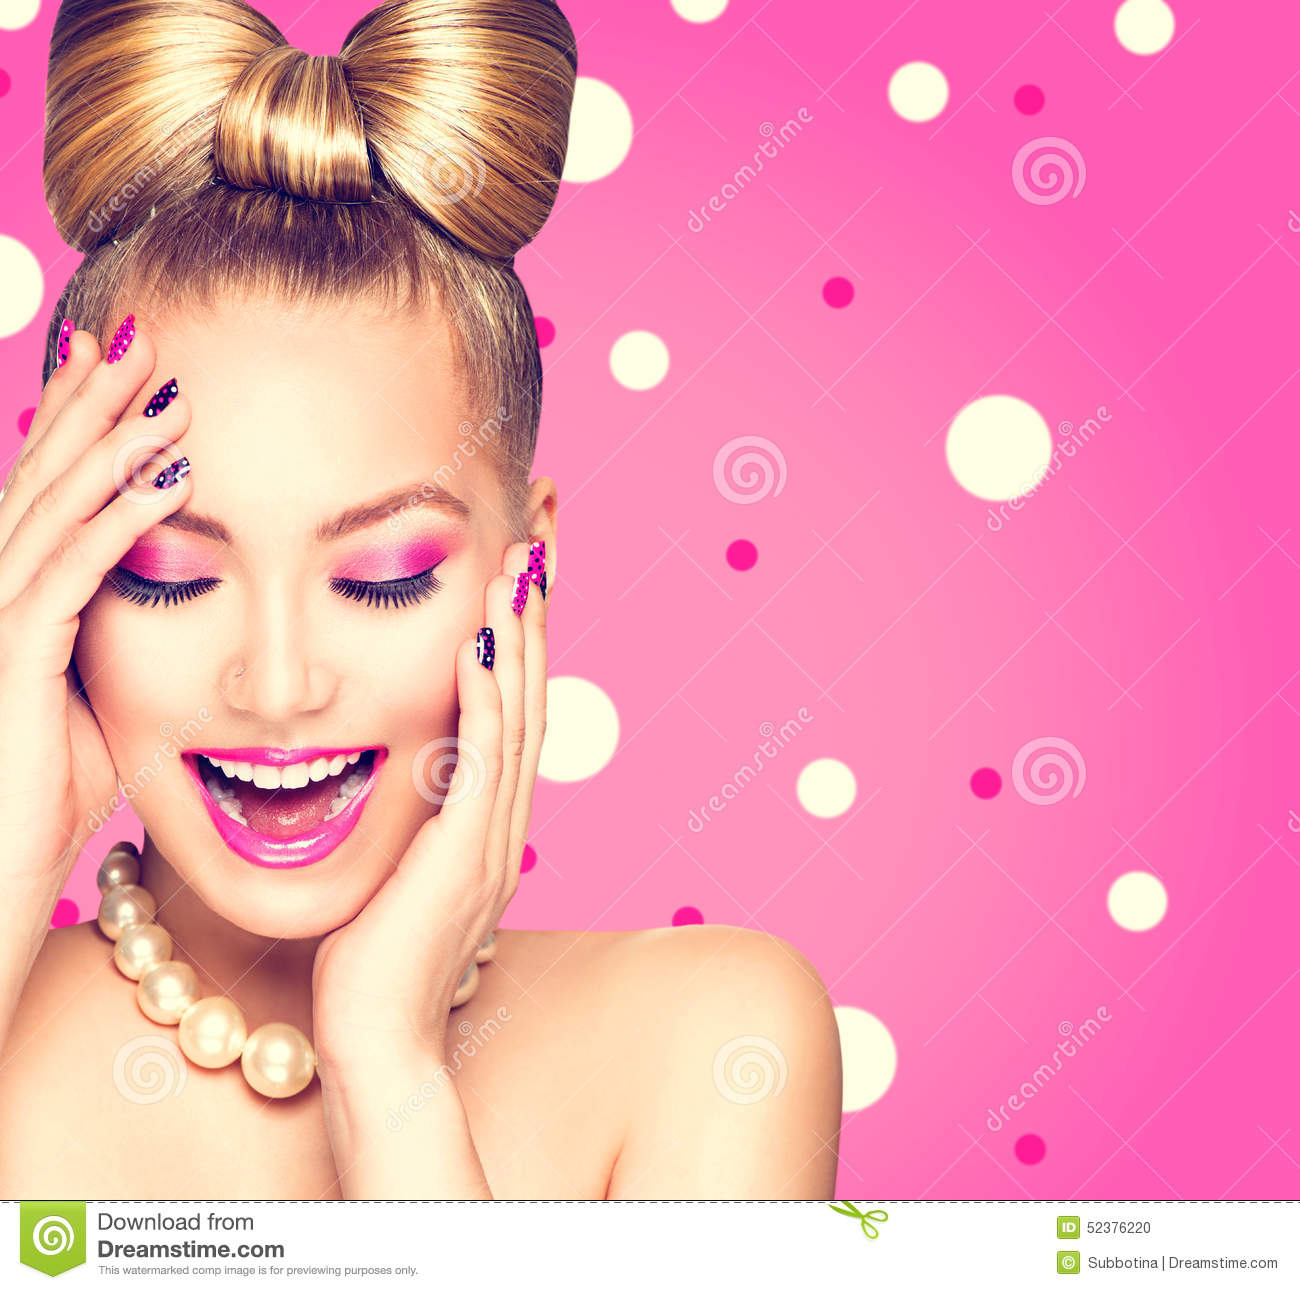 beauty-model-girl-bow-hairstyle-over-polka-dots-background-52376220.jpg